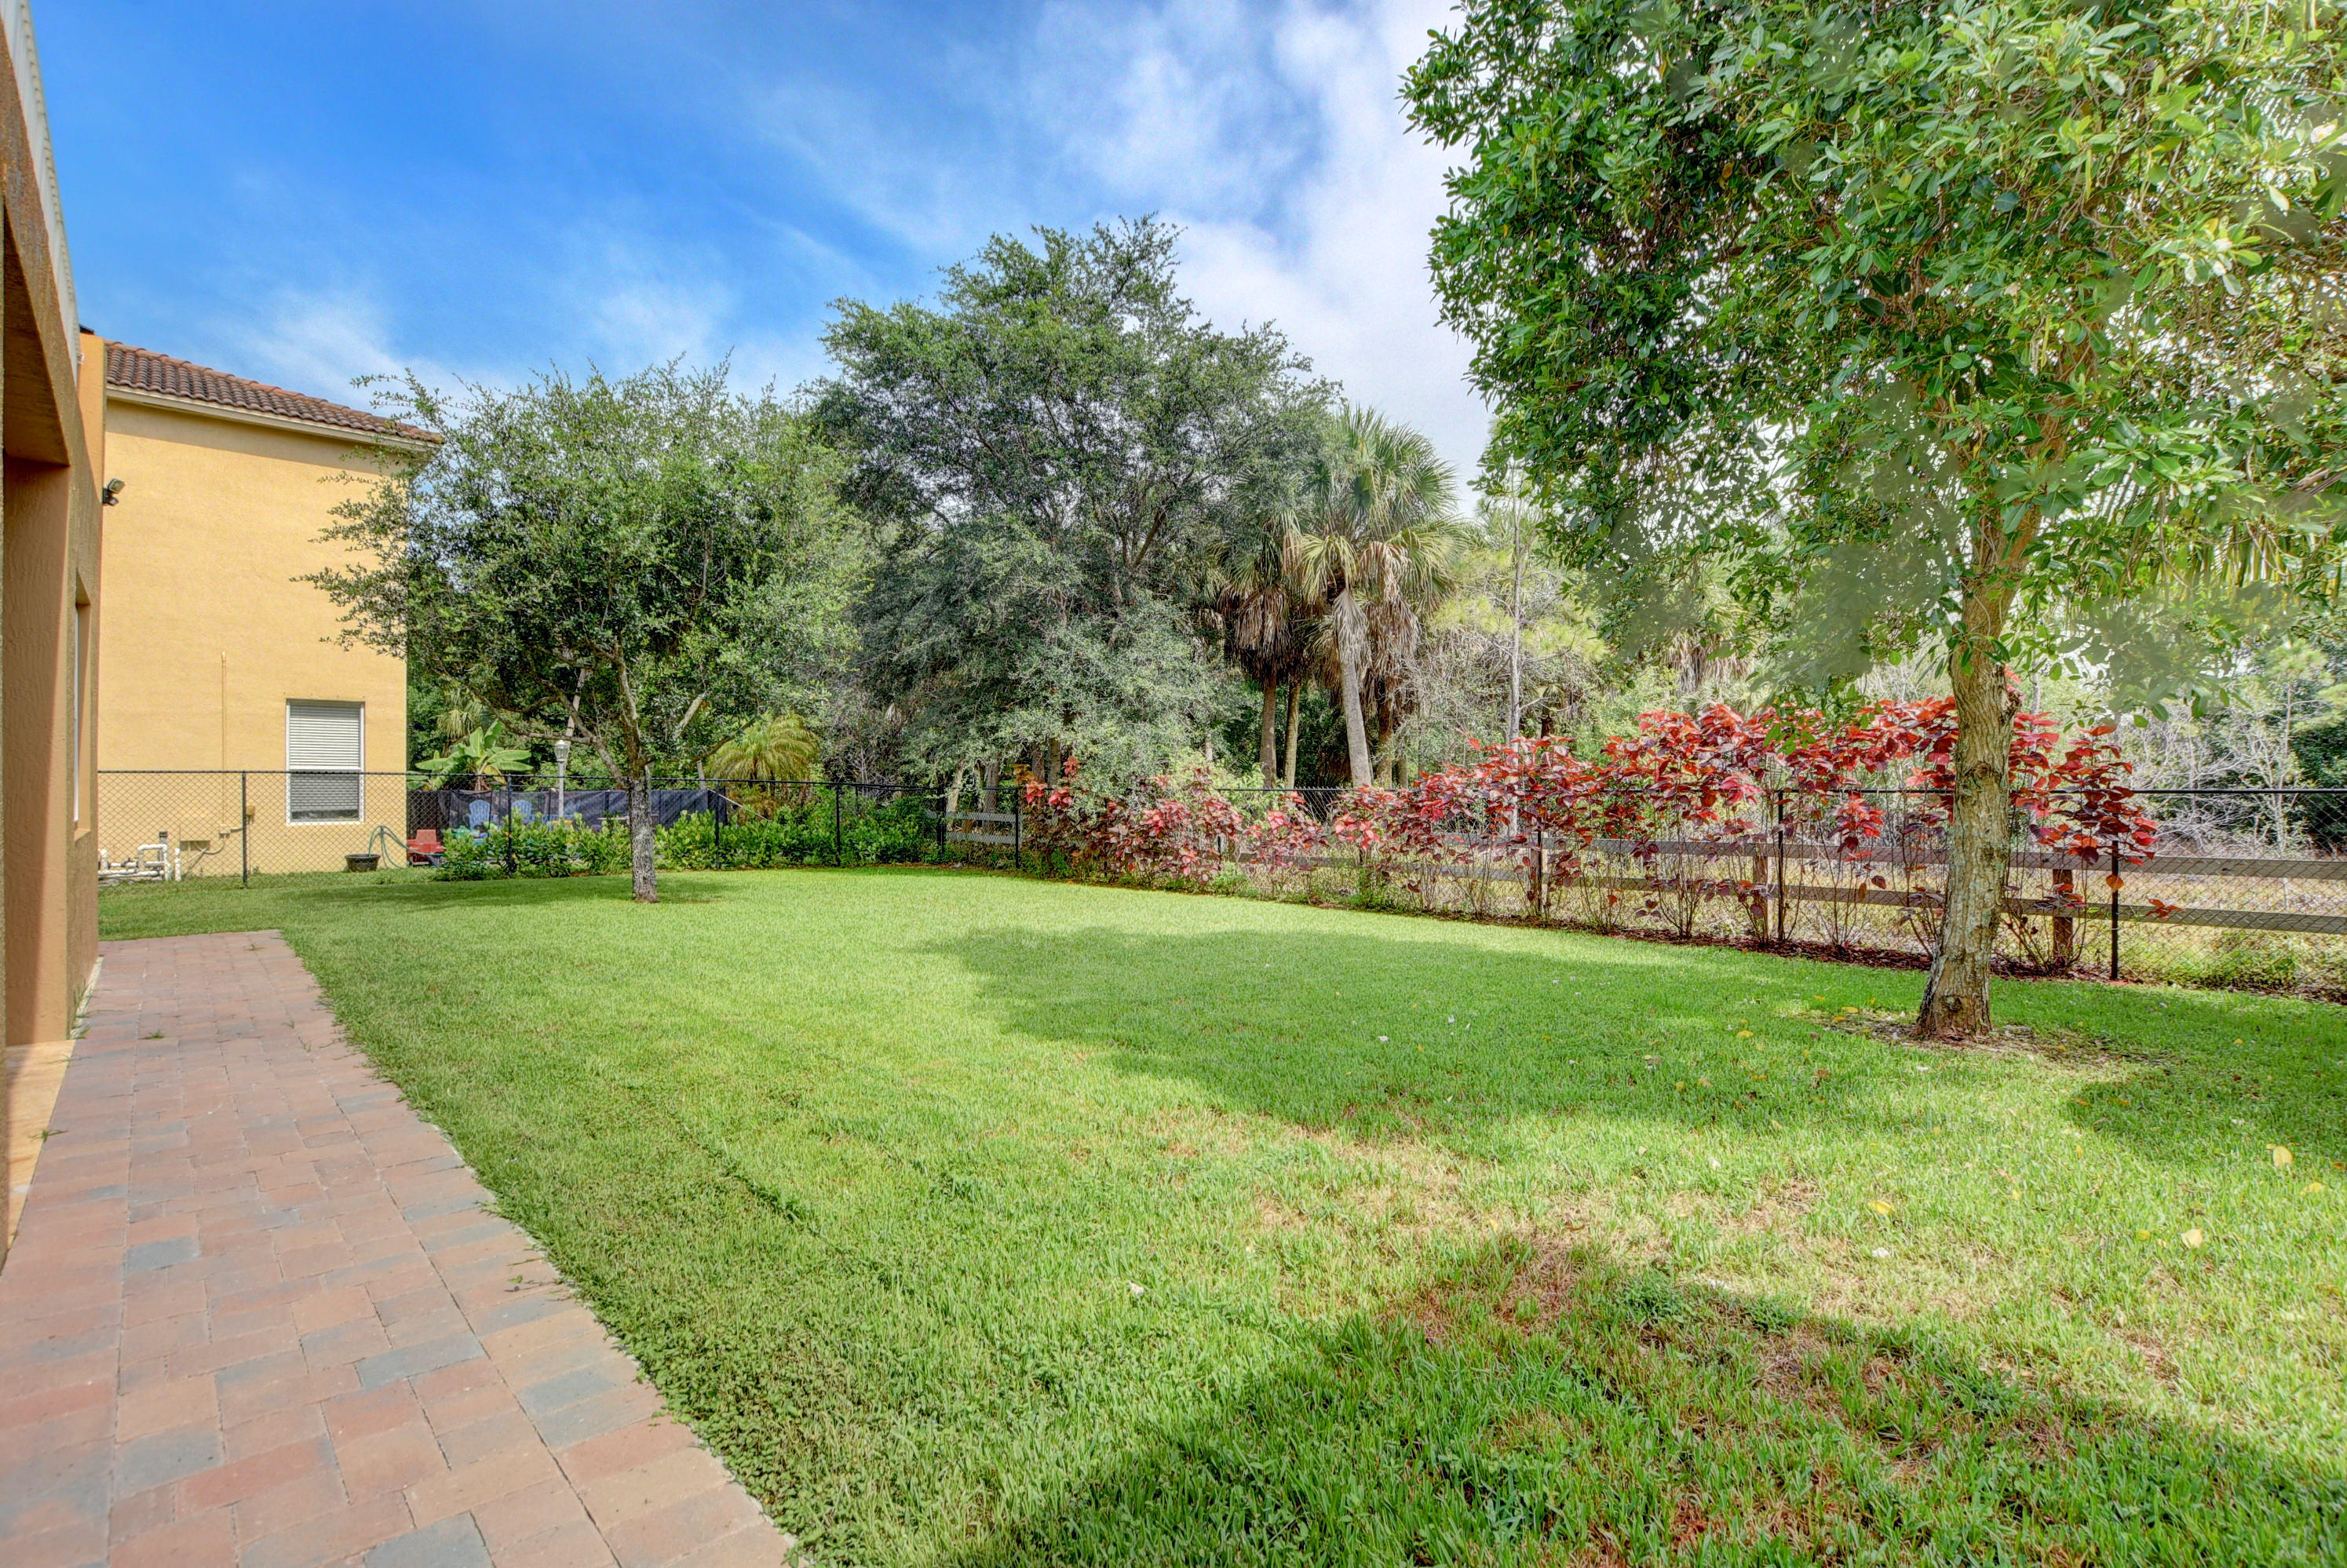 PALISADES WEST PALM BEACH REAL ESTATE